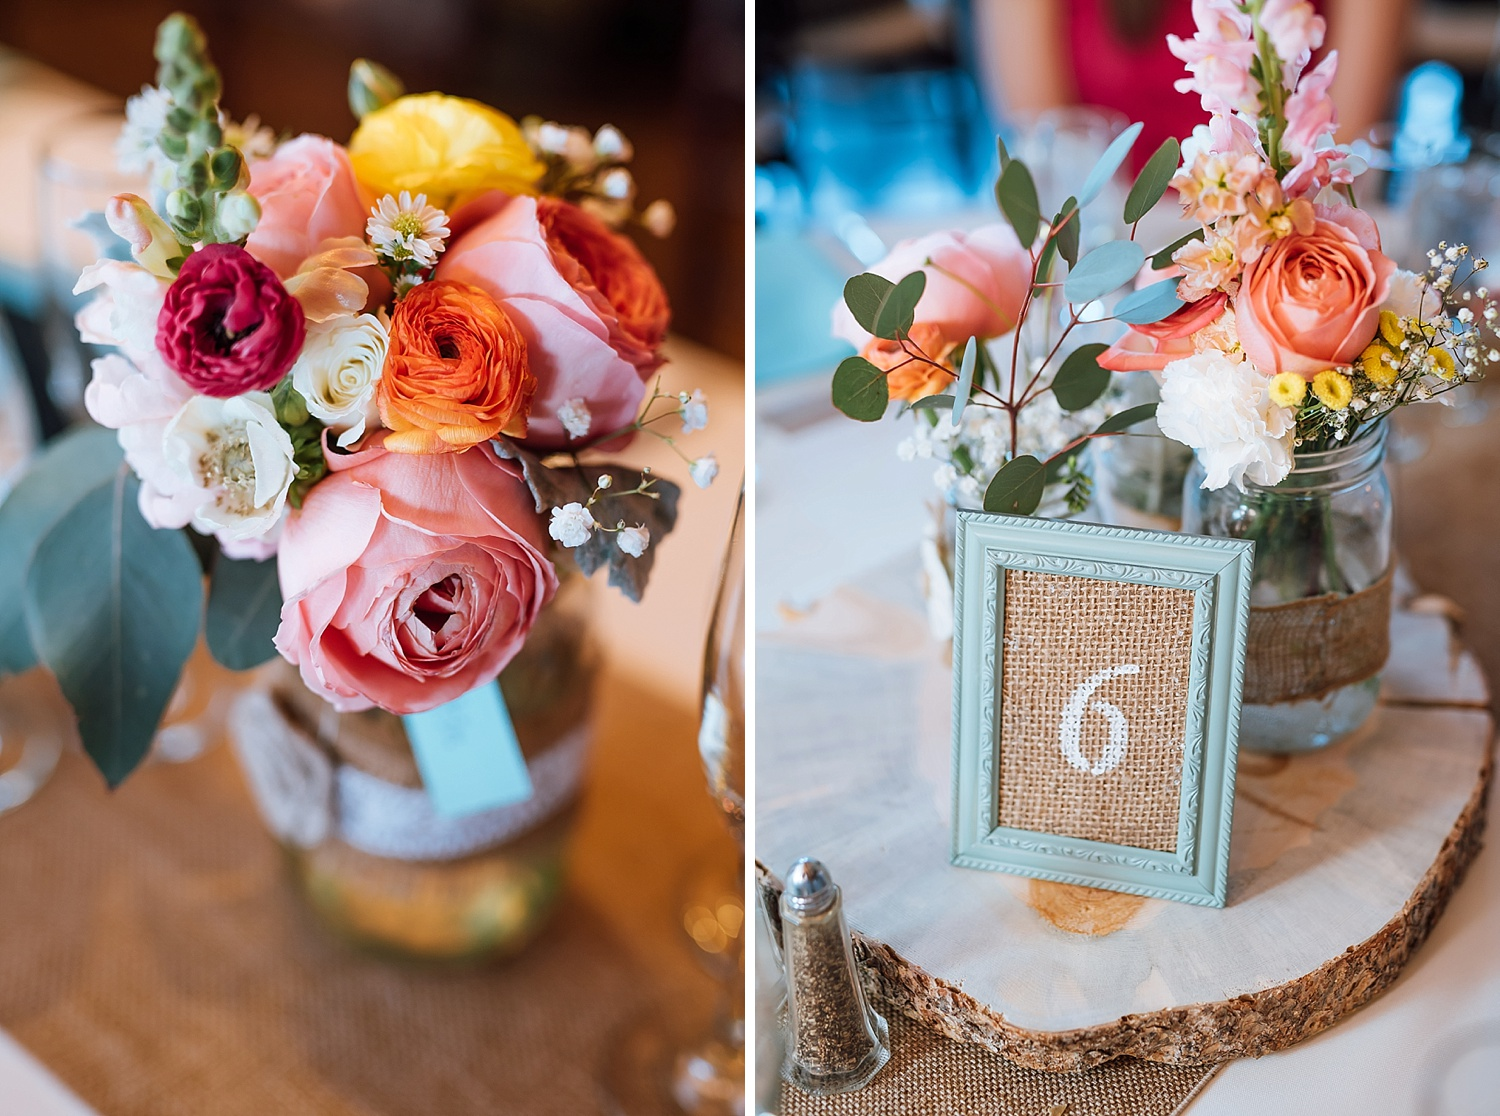 The shades of pink, orange, yellow and red in these reception flowers and amazing! I also love the burlap framed table number with the wood underneath it! Beautiful!Photo by Maddie Mae Photography